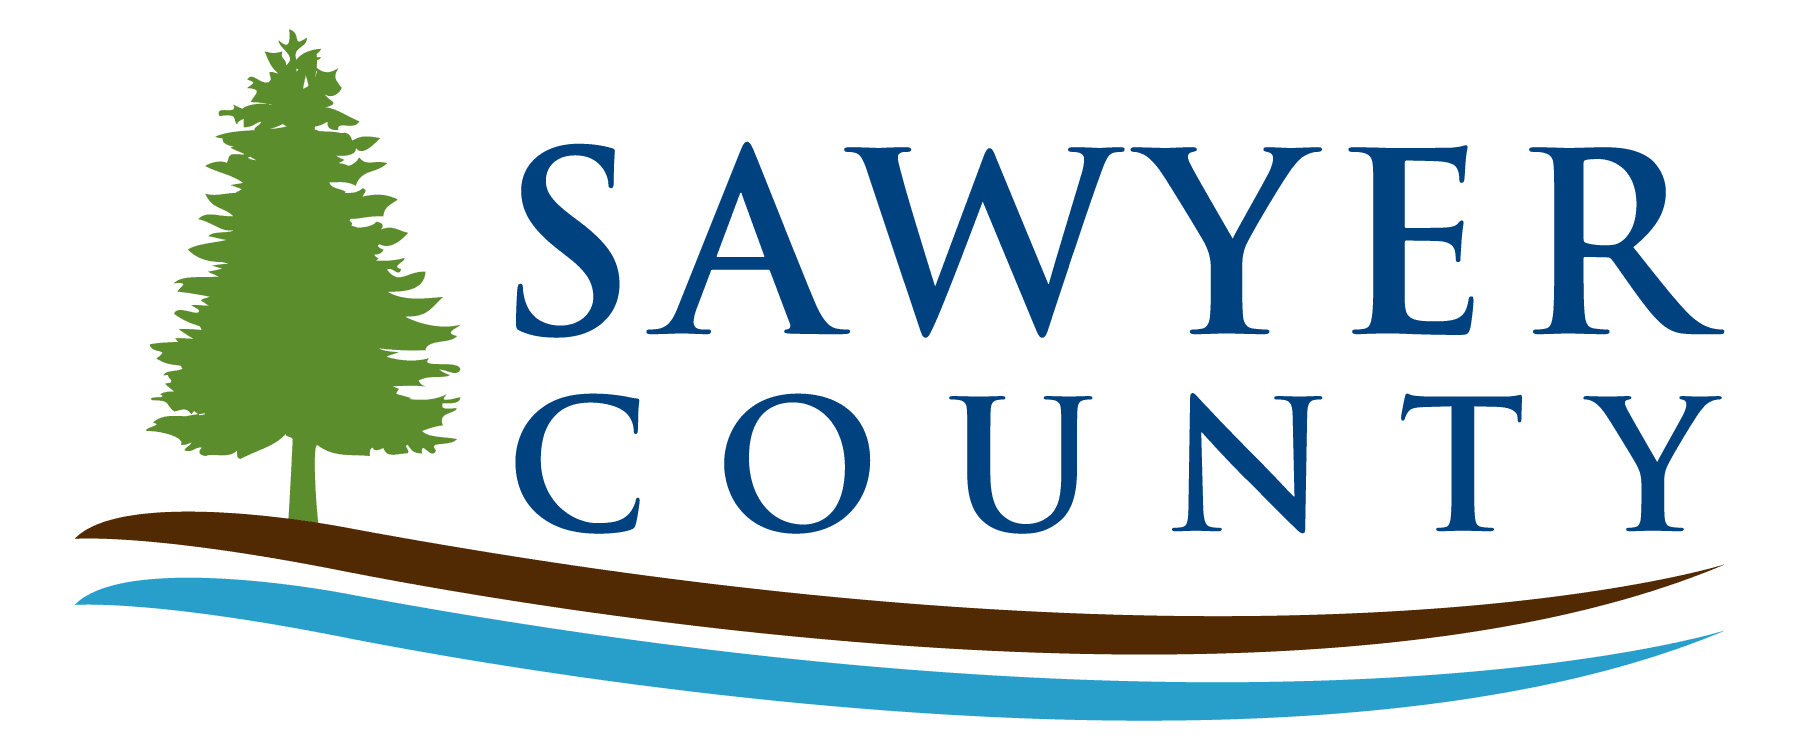 Sawyer County, WI | Official Website on